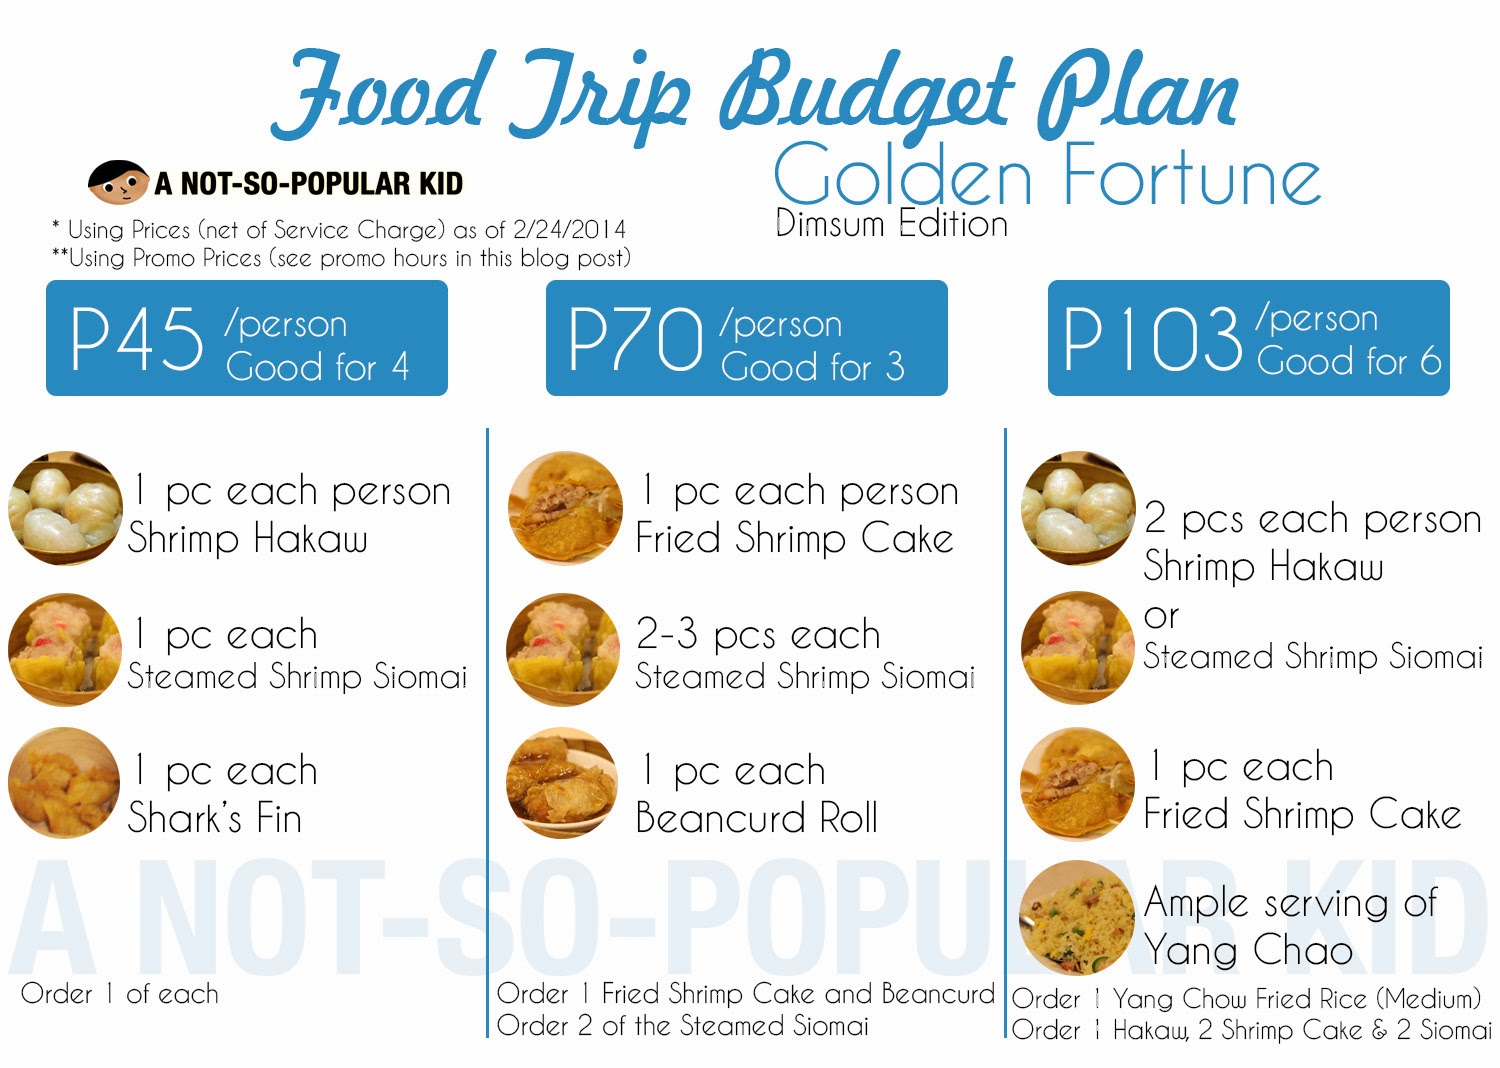 Chinese Dimsum Food Trip Budget Plan